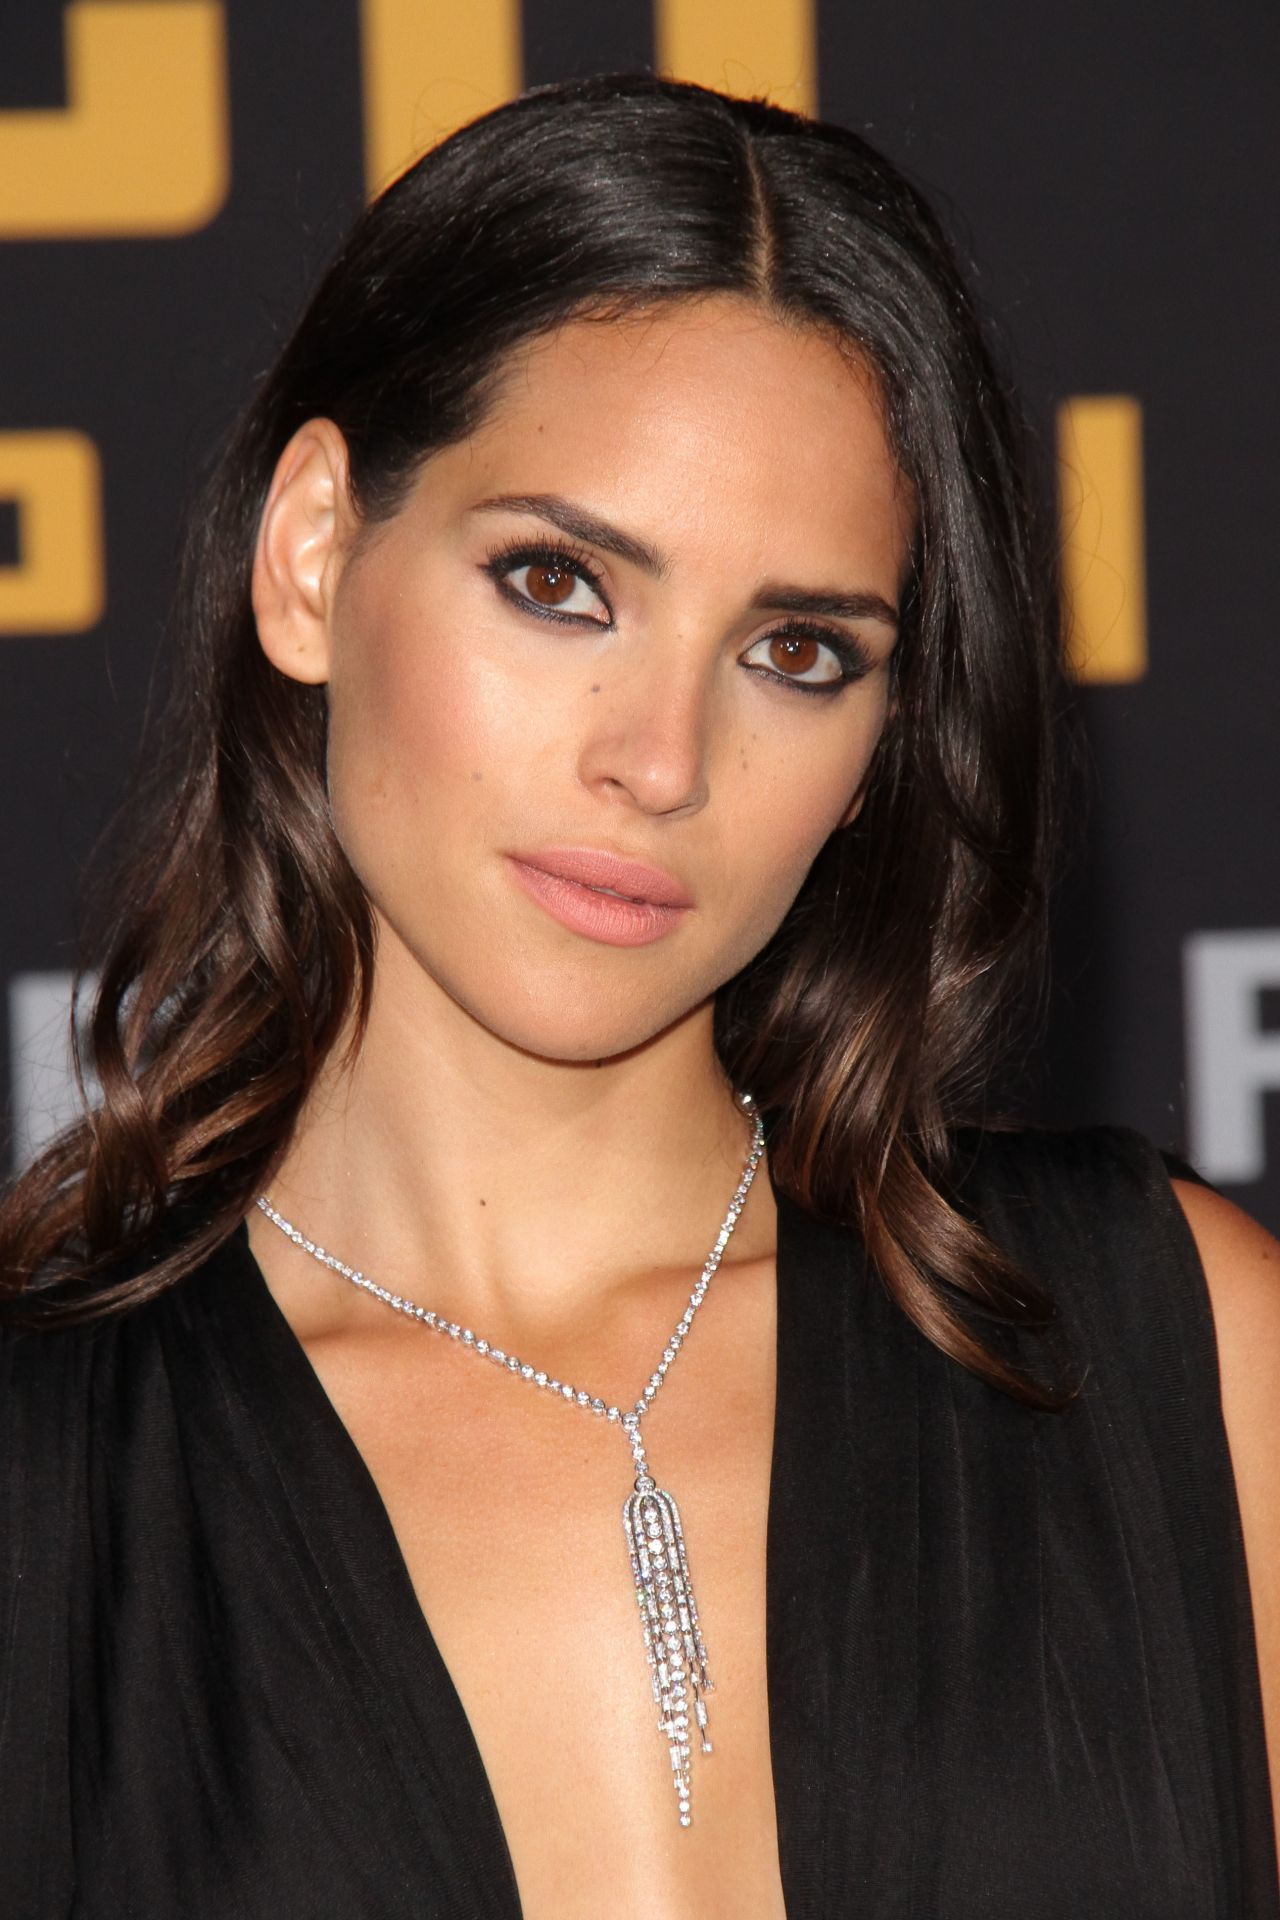 Cleavage Adria Arjona naked (48 foto and video), Pussy, Leaked, Boobs, butt 2018